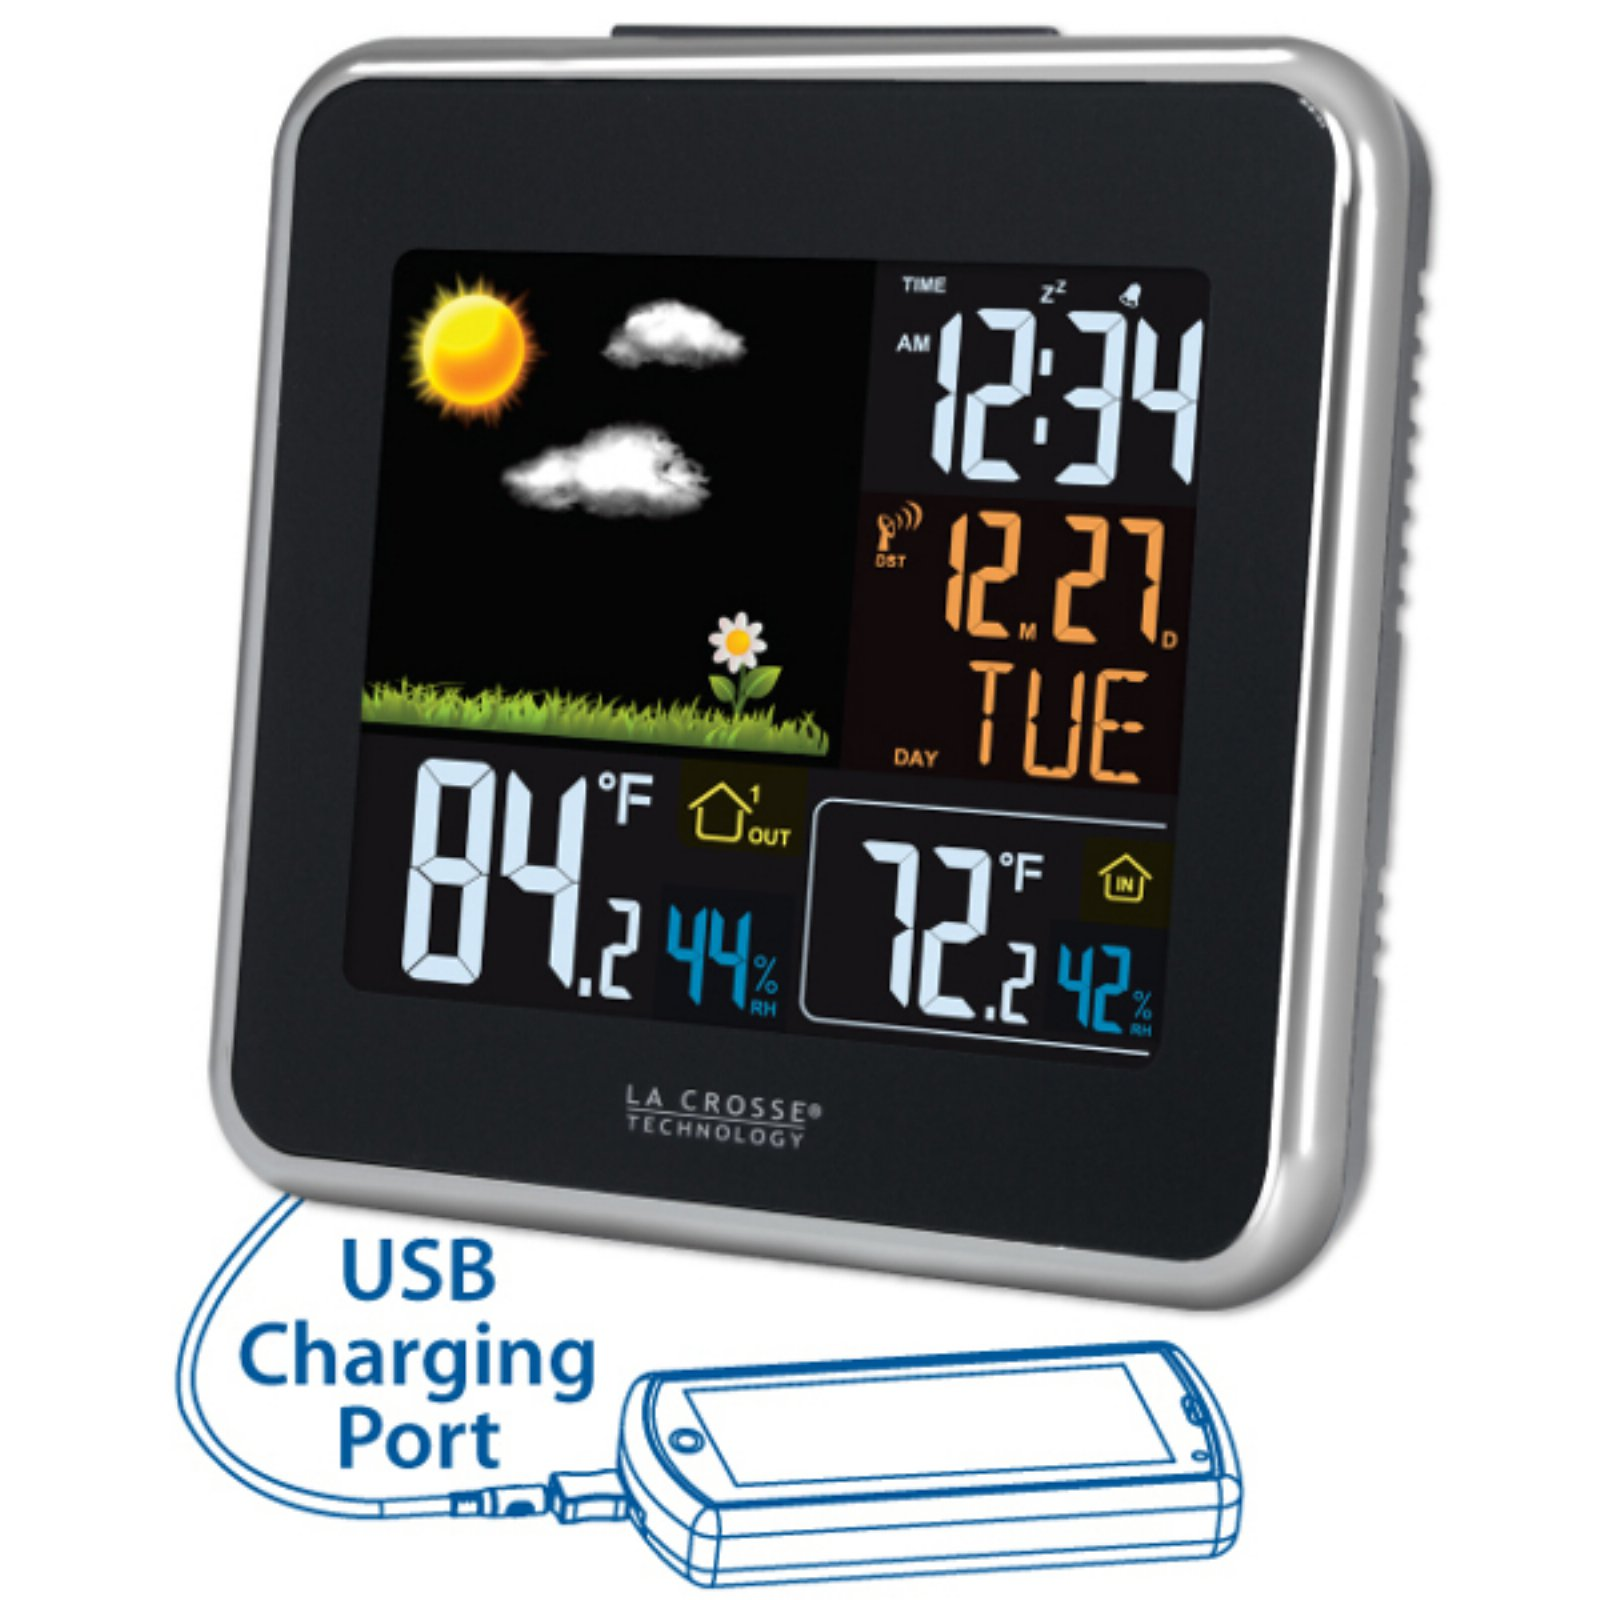 La Crosse Technology Wireless Atomic Color Weather Station with USB Charging